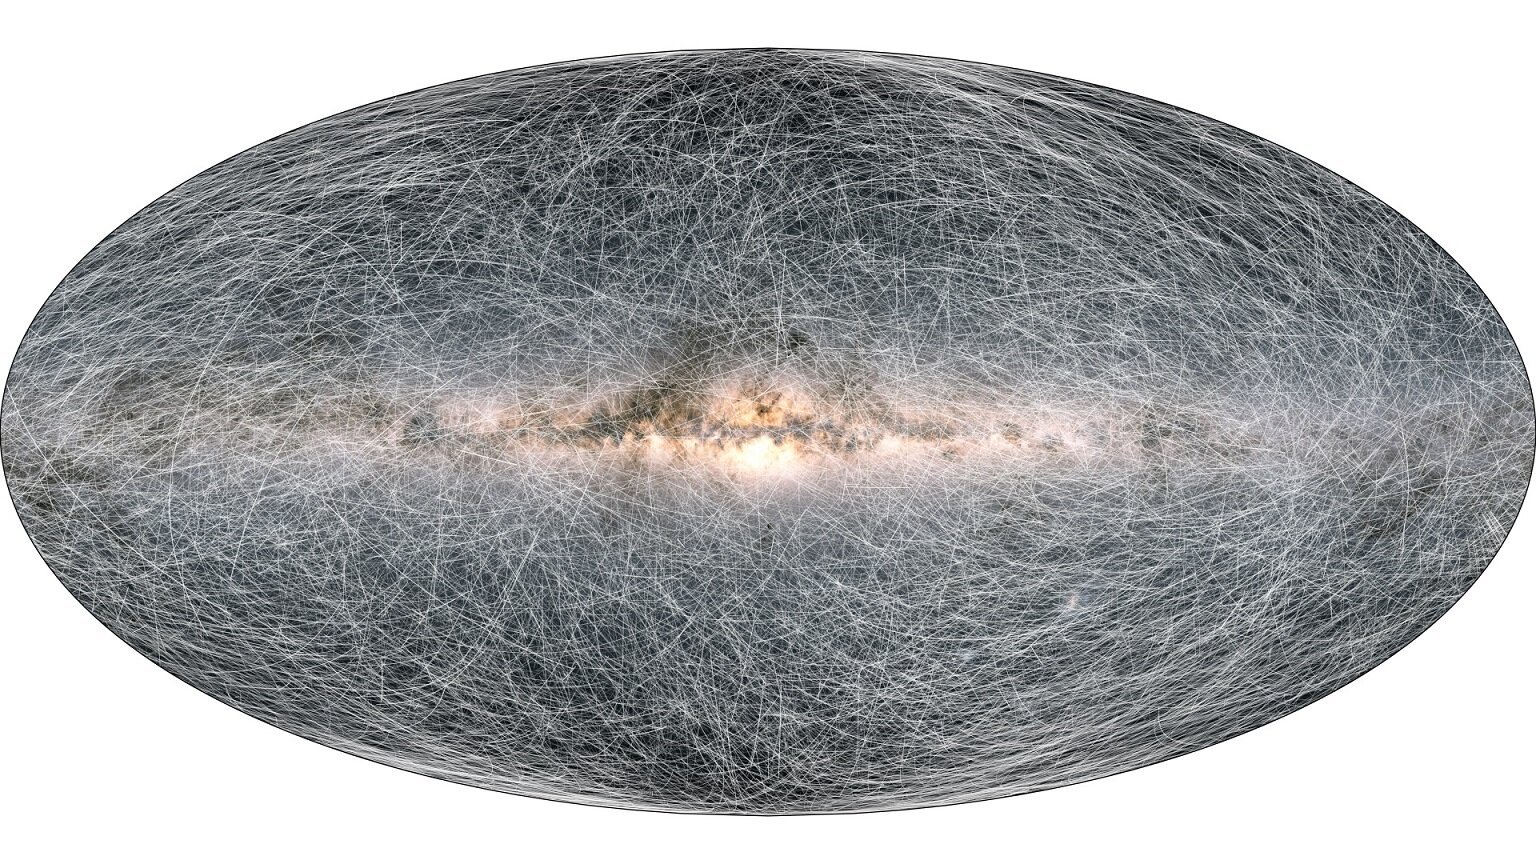 Latest Gaia star database release shows dancing Magellanic clouds